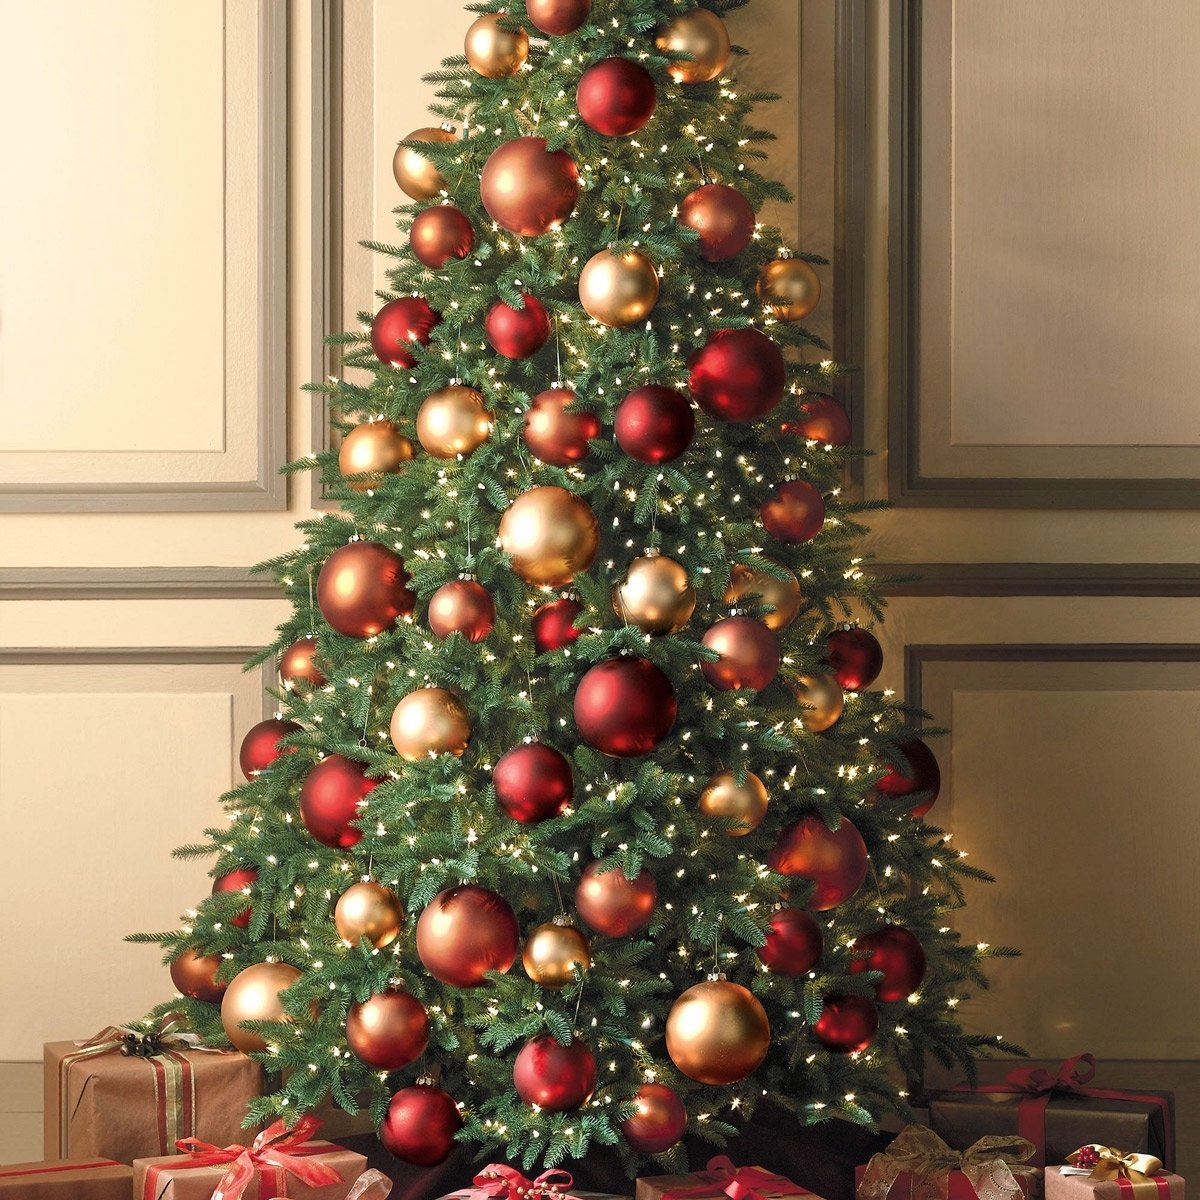 10 Stunning Red Green And Gold Christmas Tree Ideas red and green christmas tree decorations my web value 2021